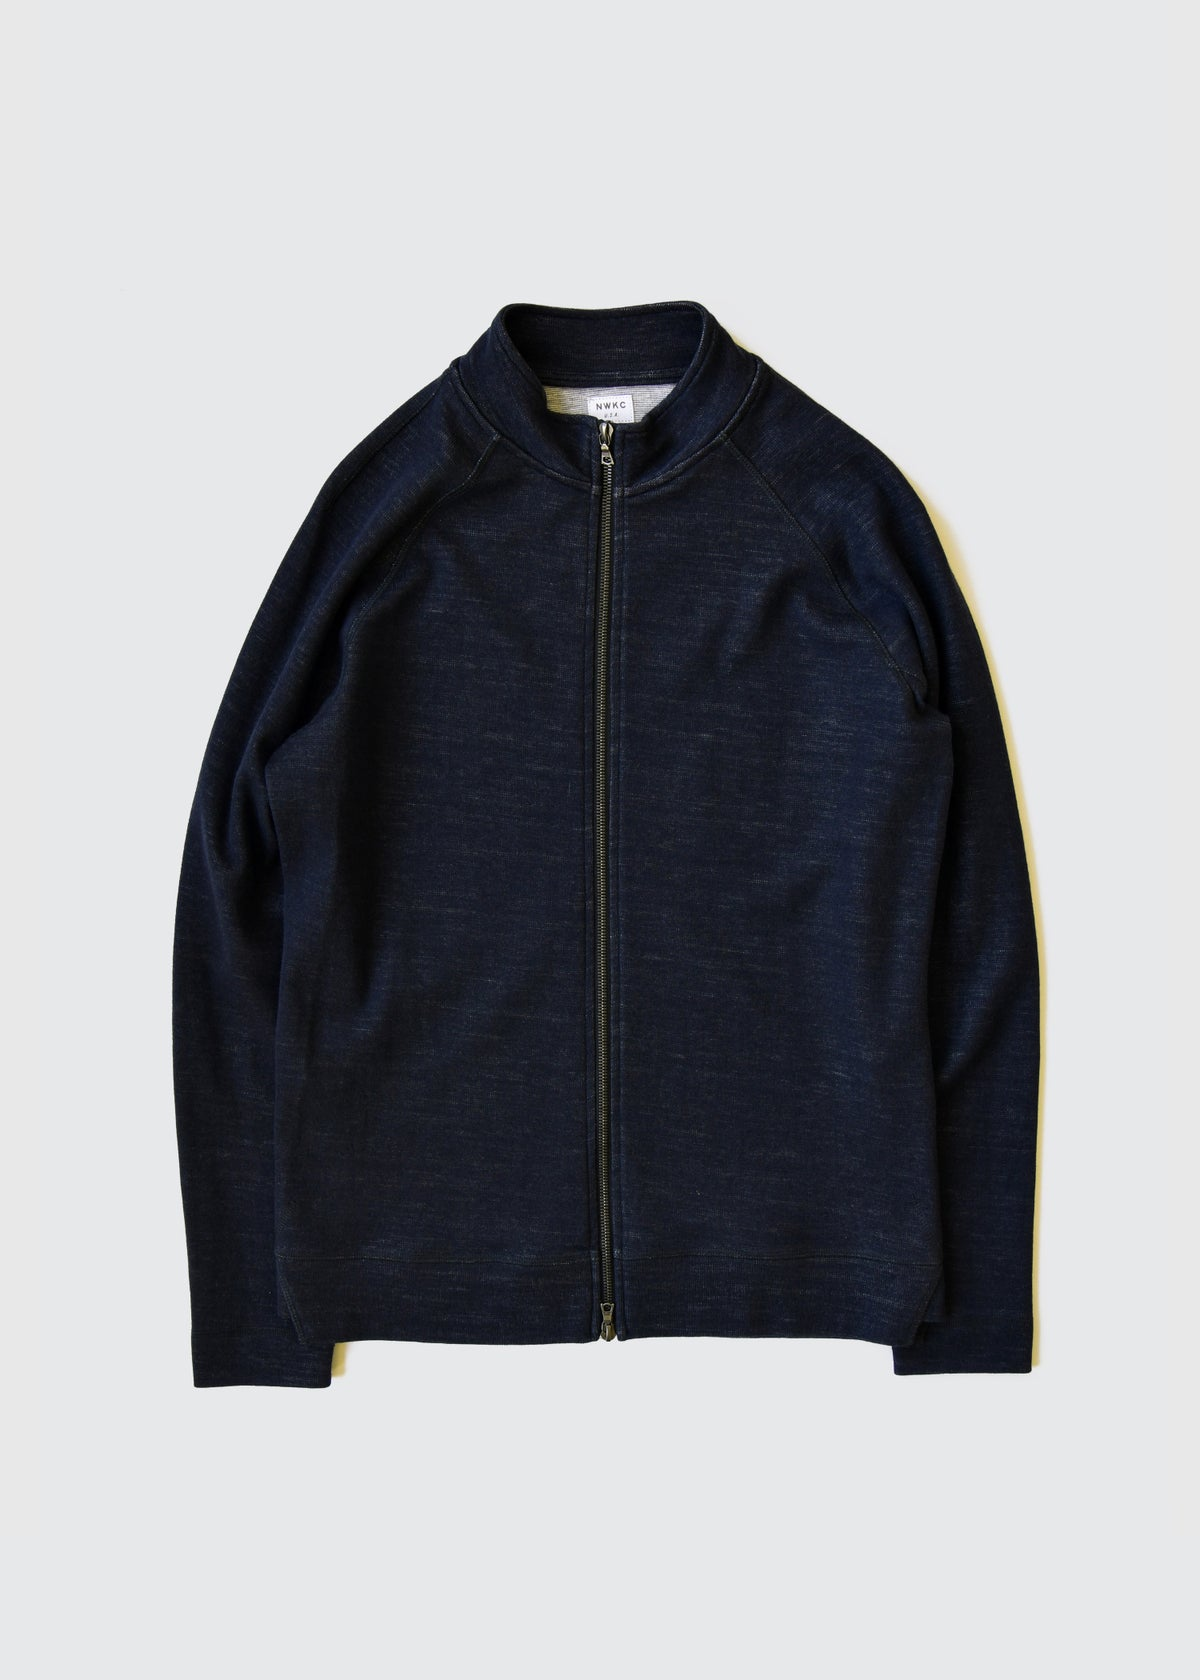 009 - SHORT COLLAR ZIP - NAVY - Wilson & Willy's - MPLS Neighbor Goods